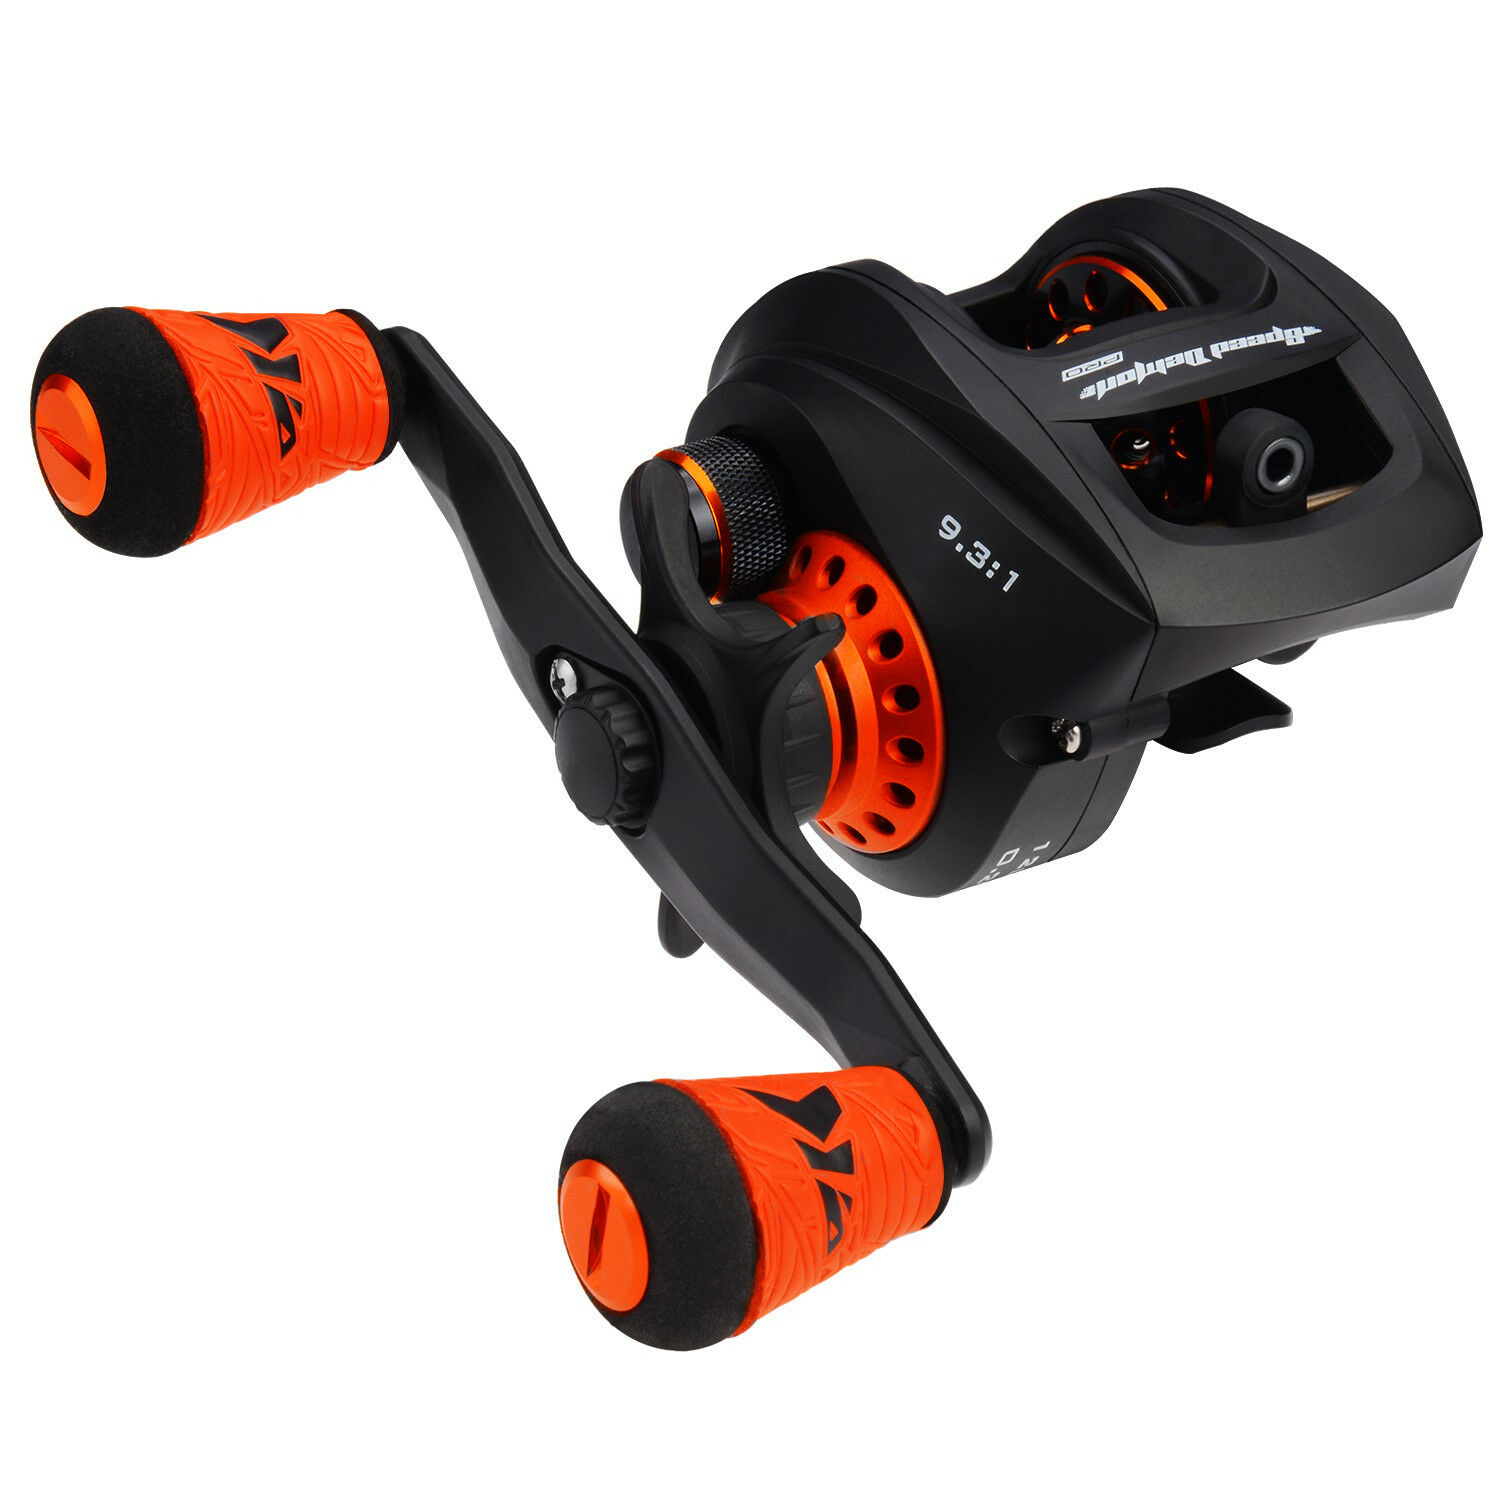 KastKing  Speed Demon Pro Baitcasting Reels 9.3 1 High Speed Reel - Right-Handed  free shipping & exchanges.